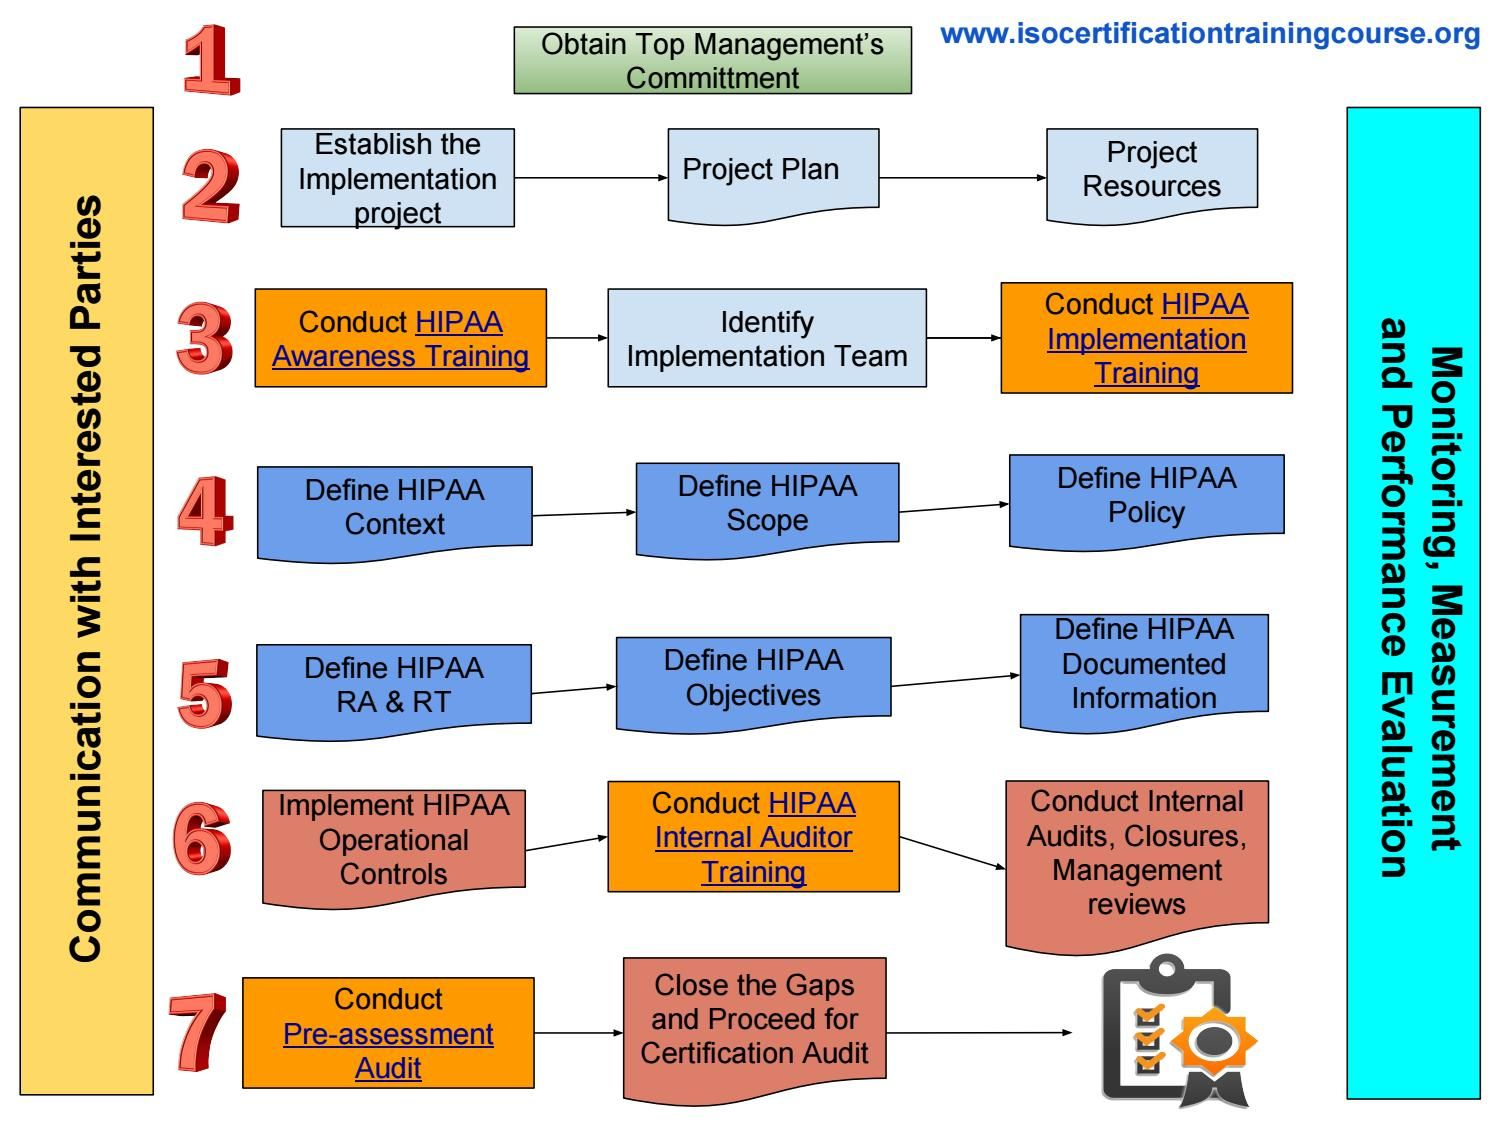 small resolution of for successful results auditee organizations are required to follow these steps as mentioned in the process flow diagram to achieve hipaa certification